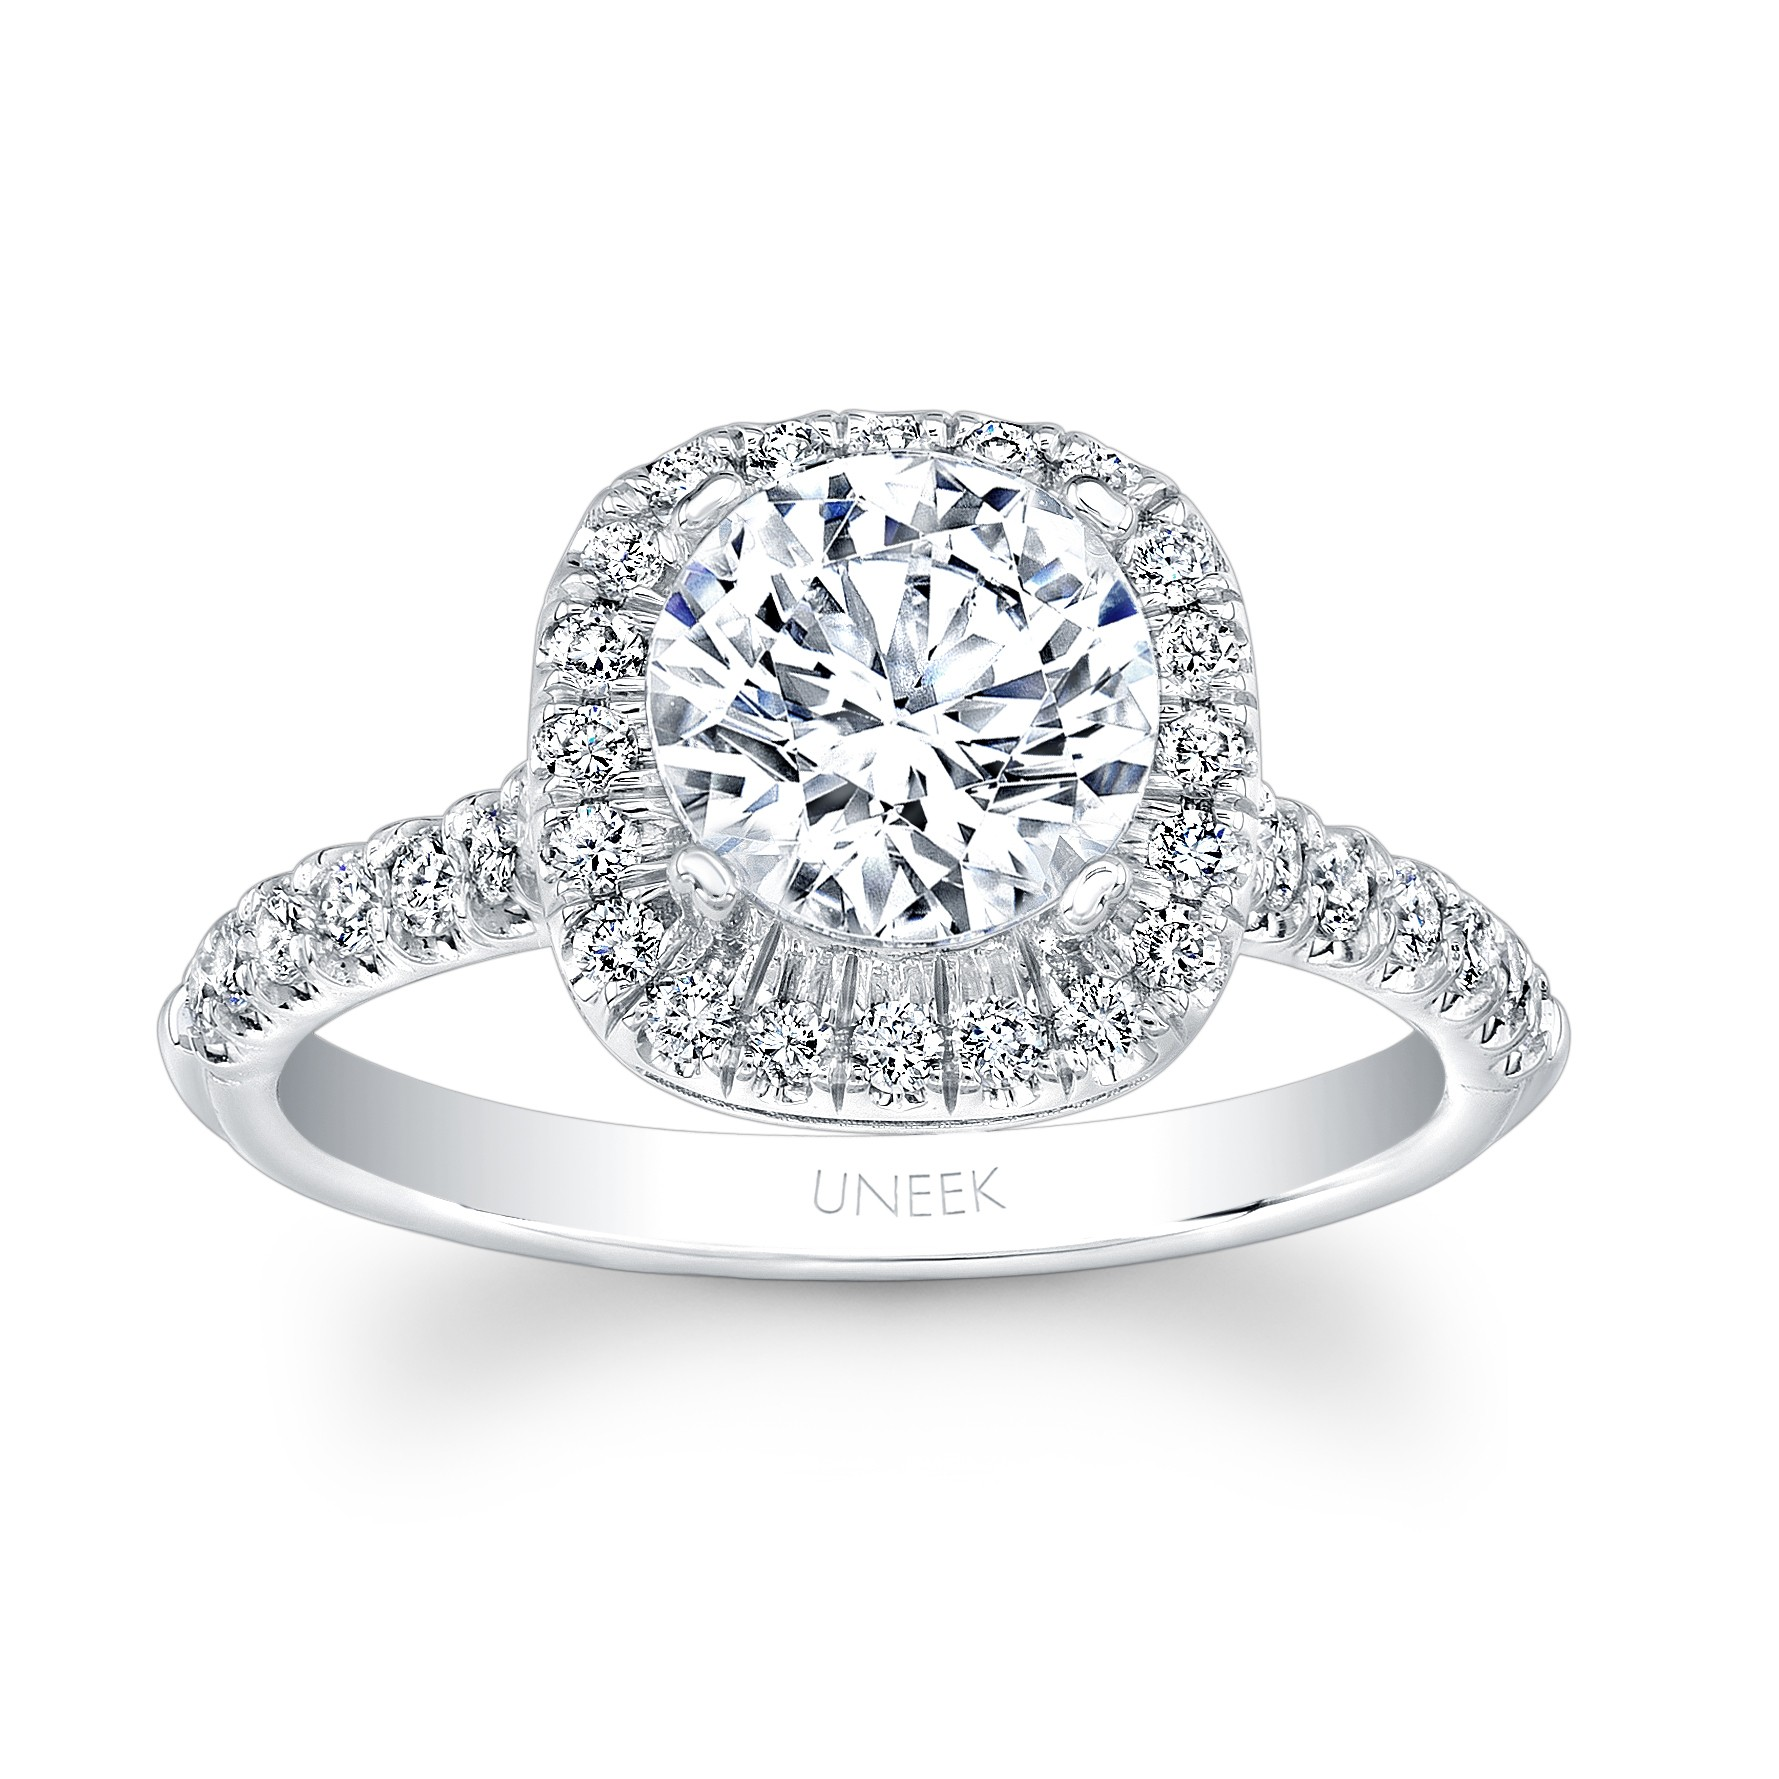 Classic Round Diamond on Cushion Halo Engagement Ring with U Pave Upper Shank